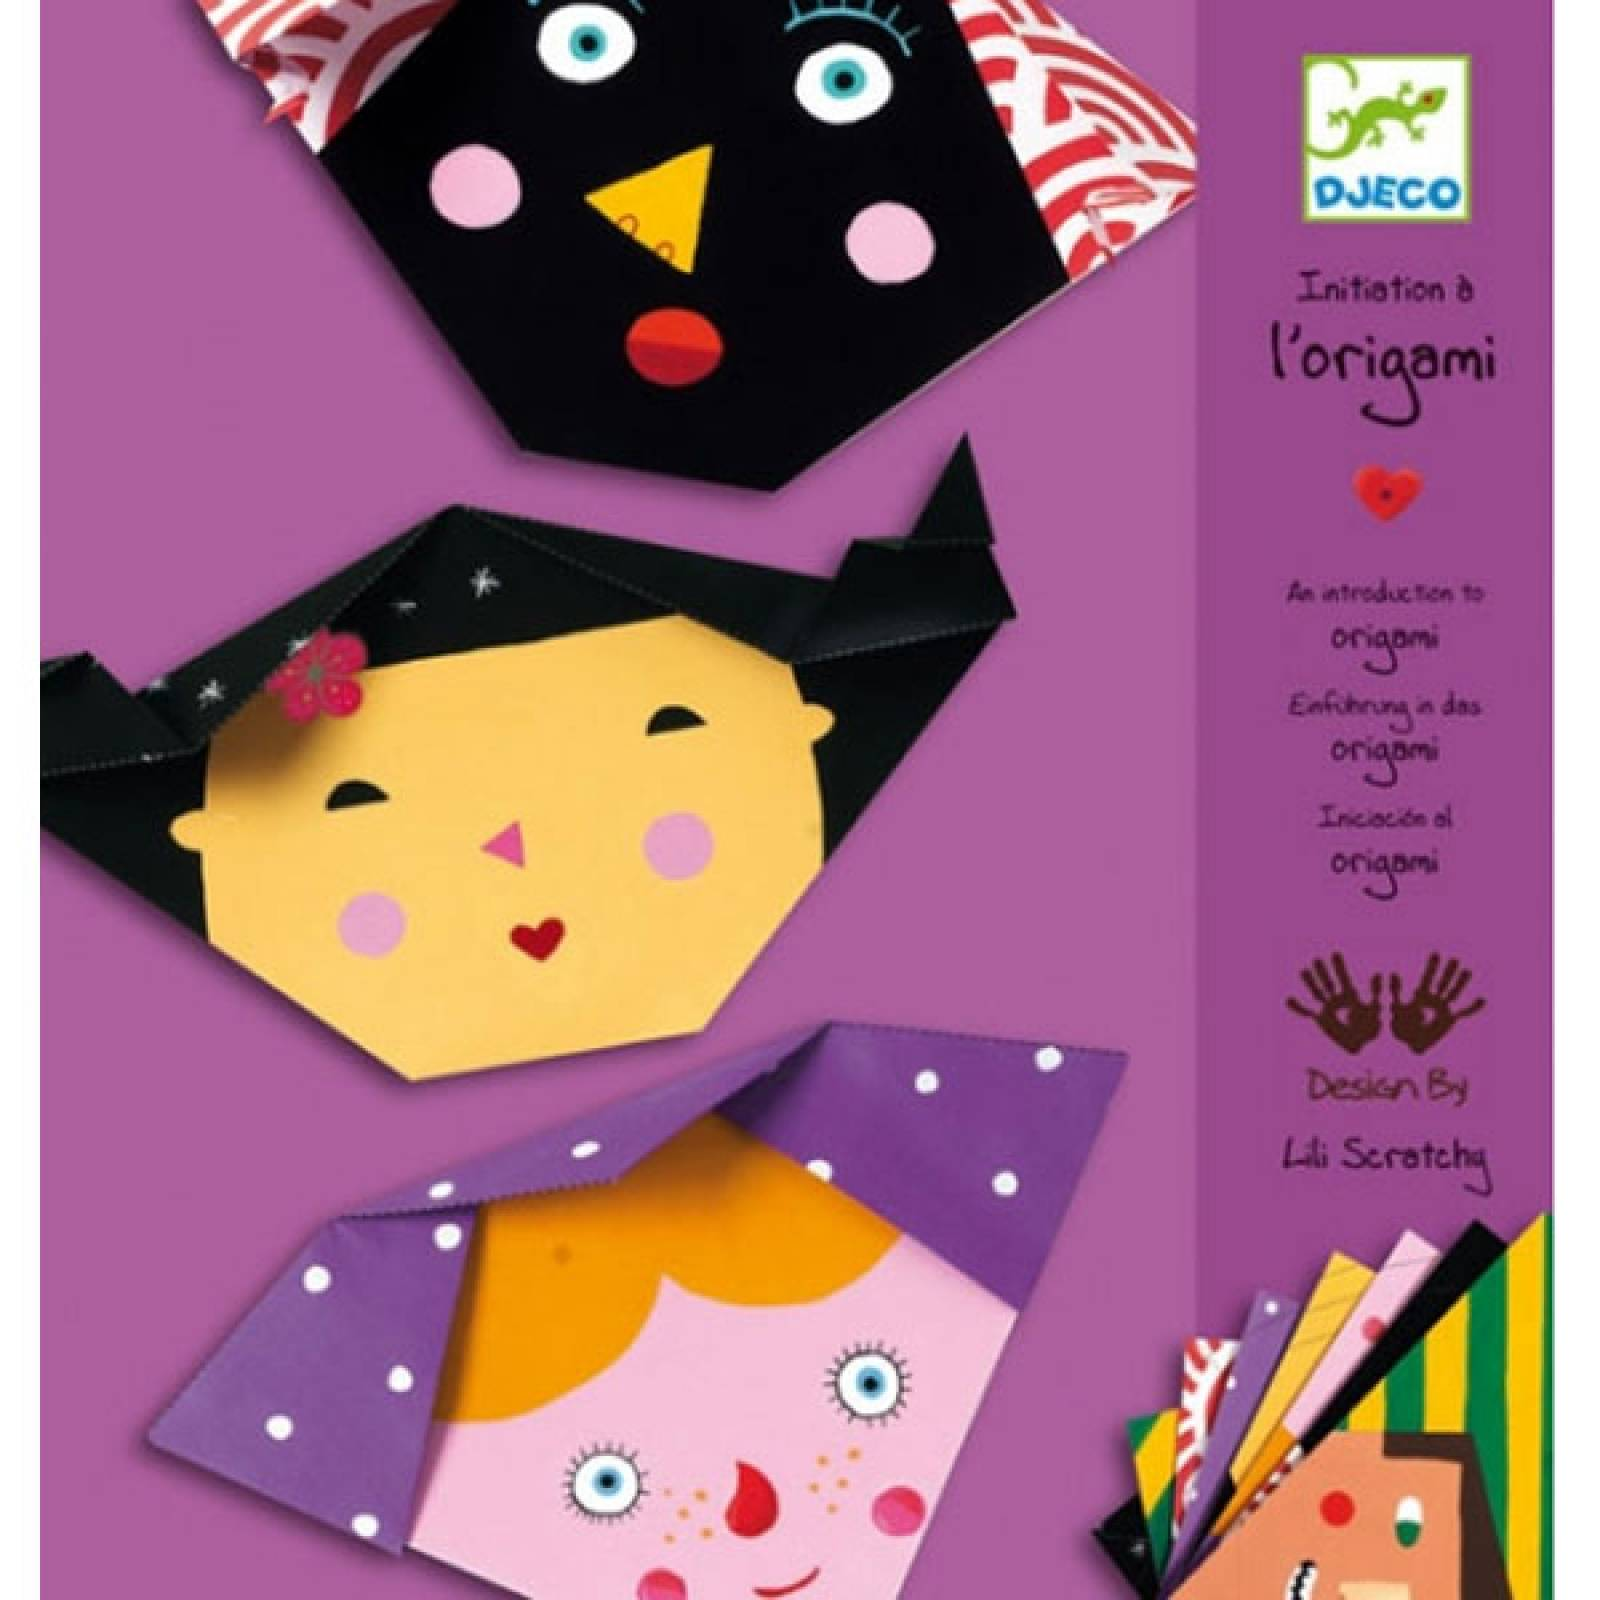 Faces Origami By Djeco.